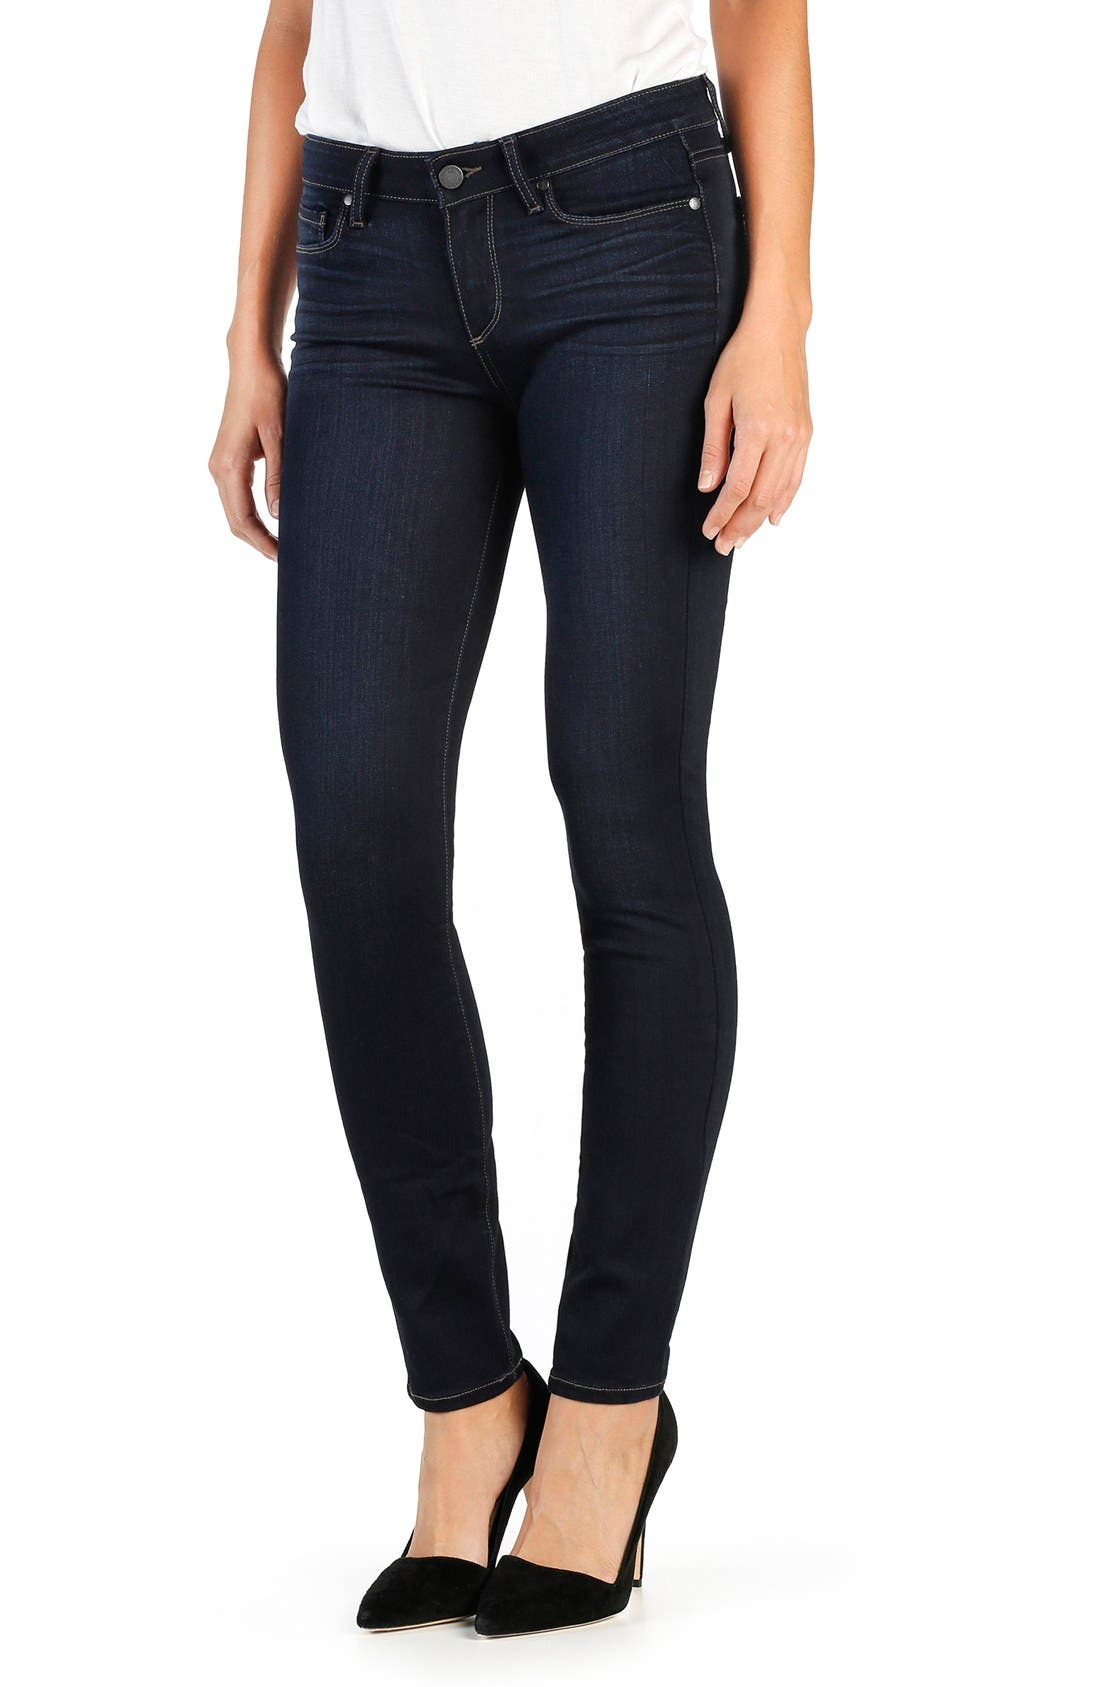 Alternate Image 1 Selected - PAIGE Transcend Verdugo Ankle Ultra Skinny Jeans (Ellora)